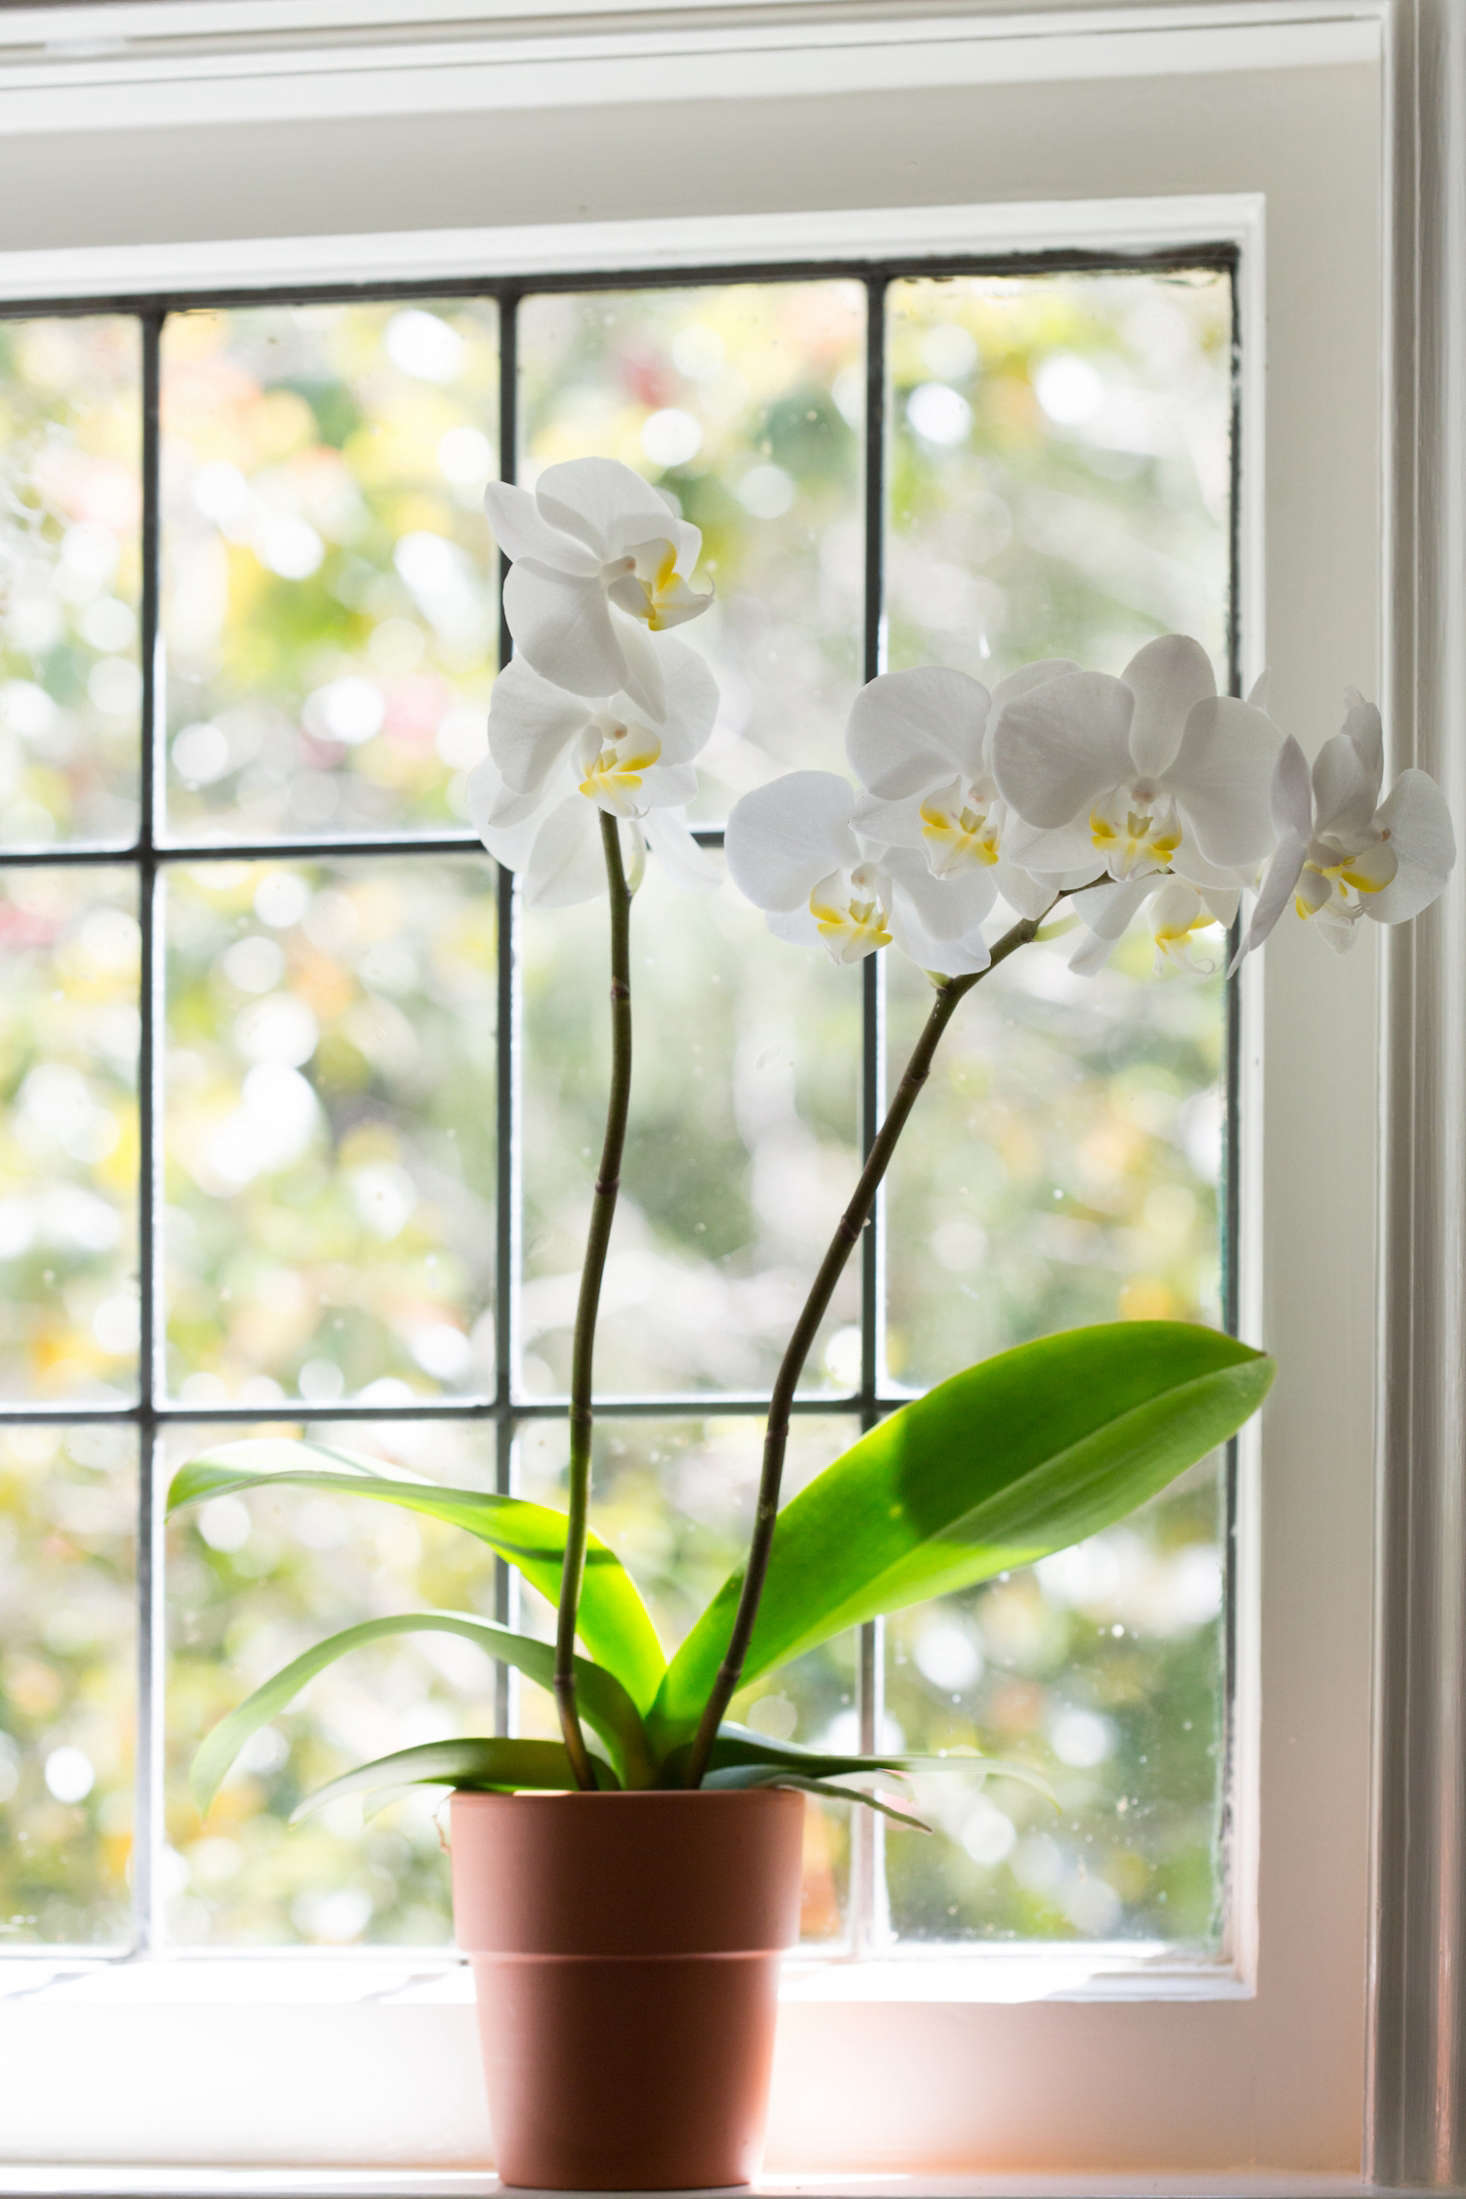 How To Make An Orchid Bloom Again Gardenista